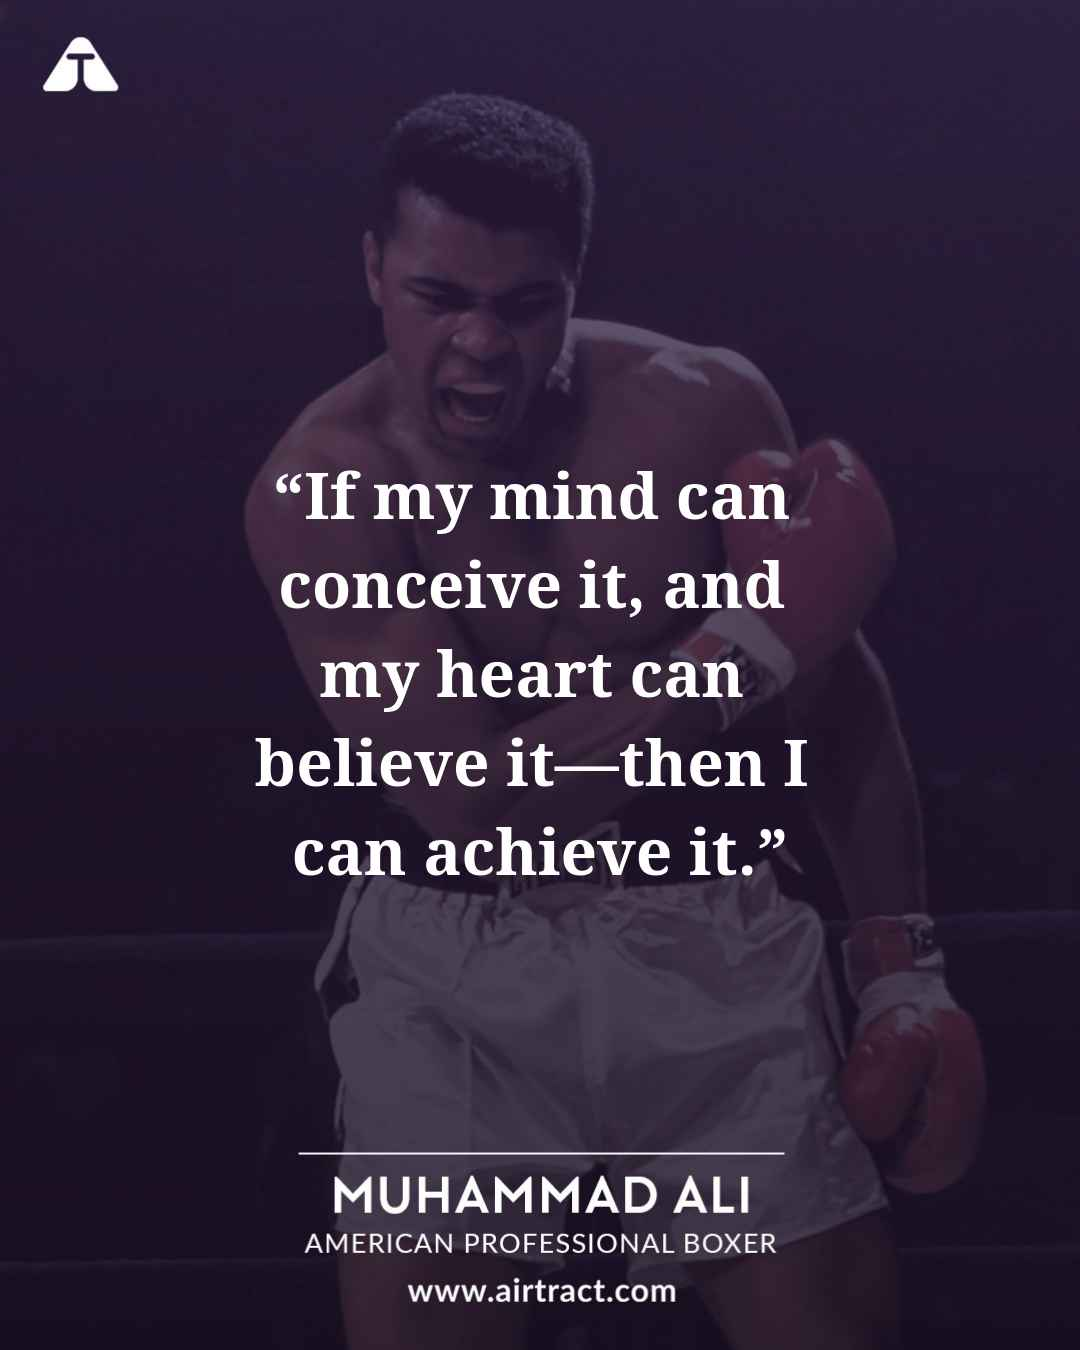 [Image] Yes we can achieve it.